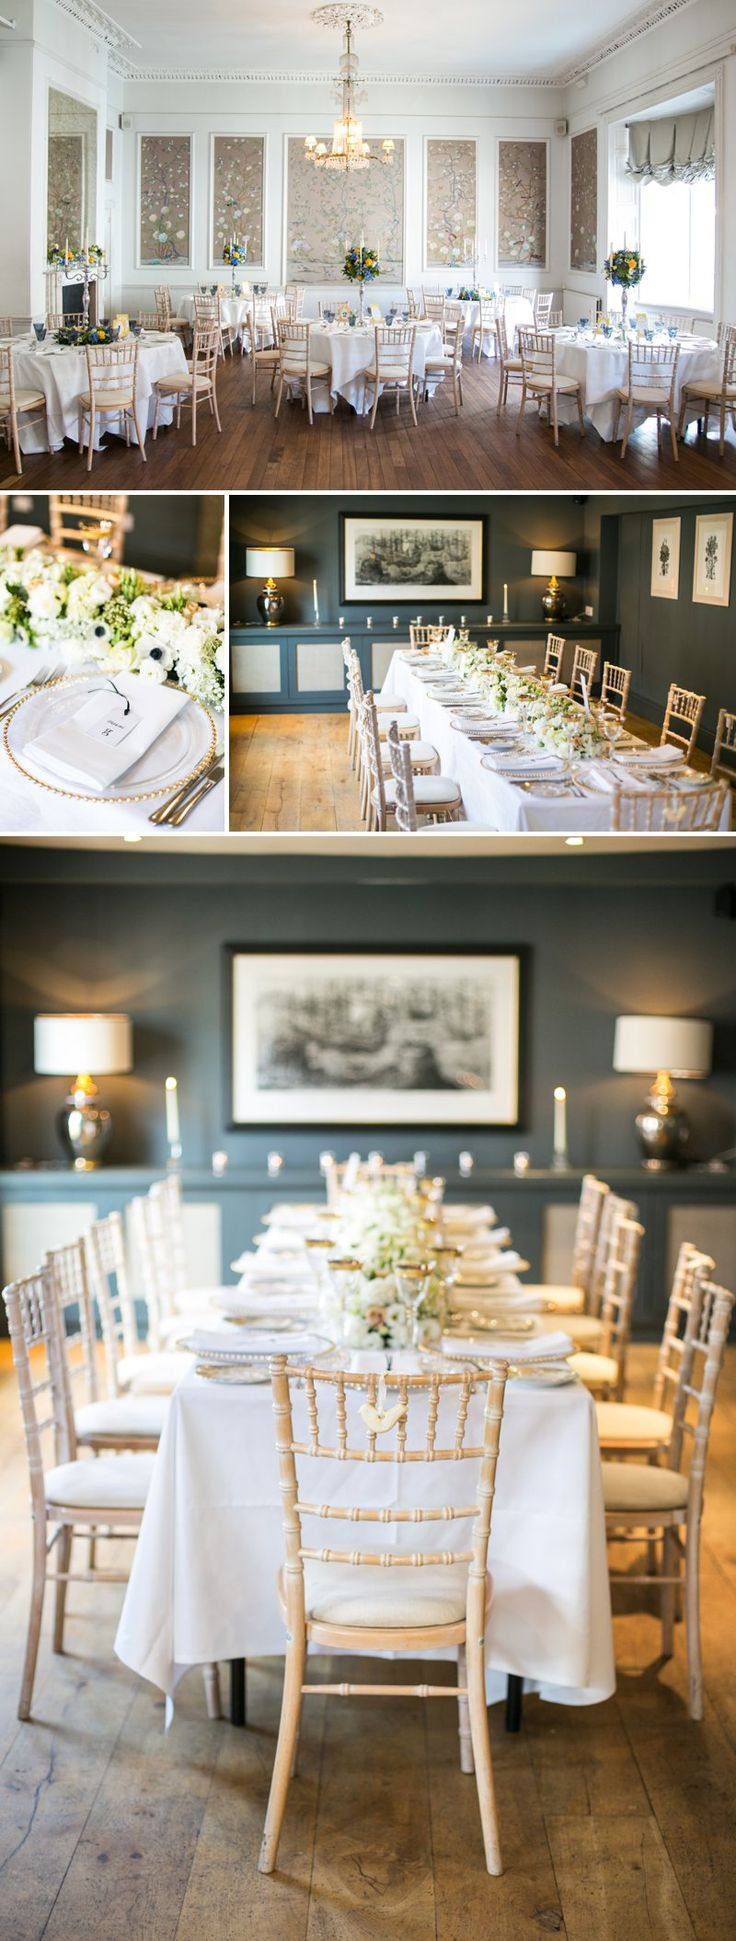 Vintage Inspired Wedding Venue Hotel The George In Rye East Sussex